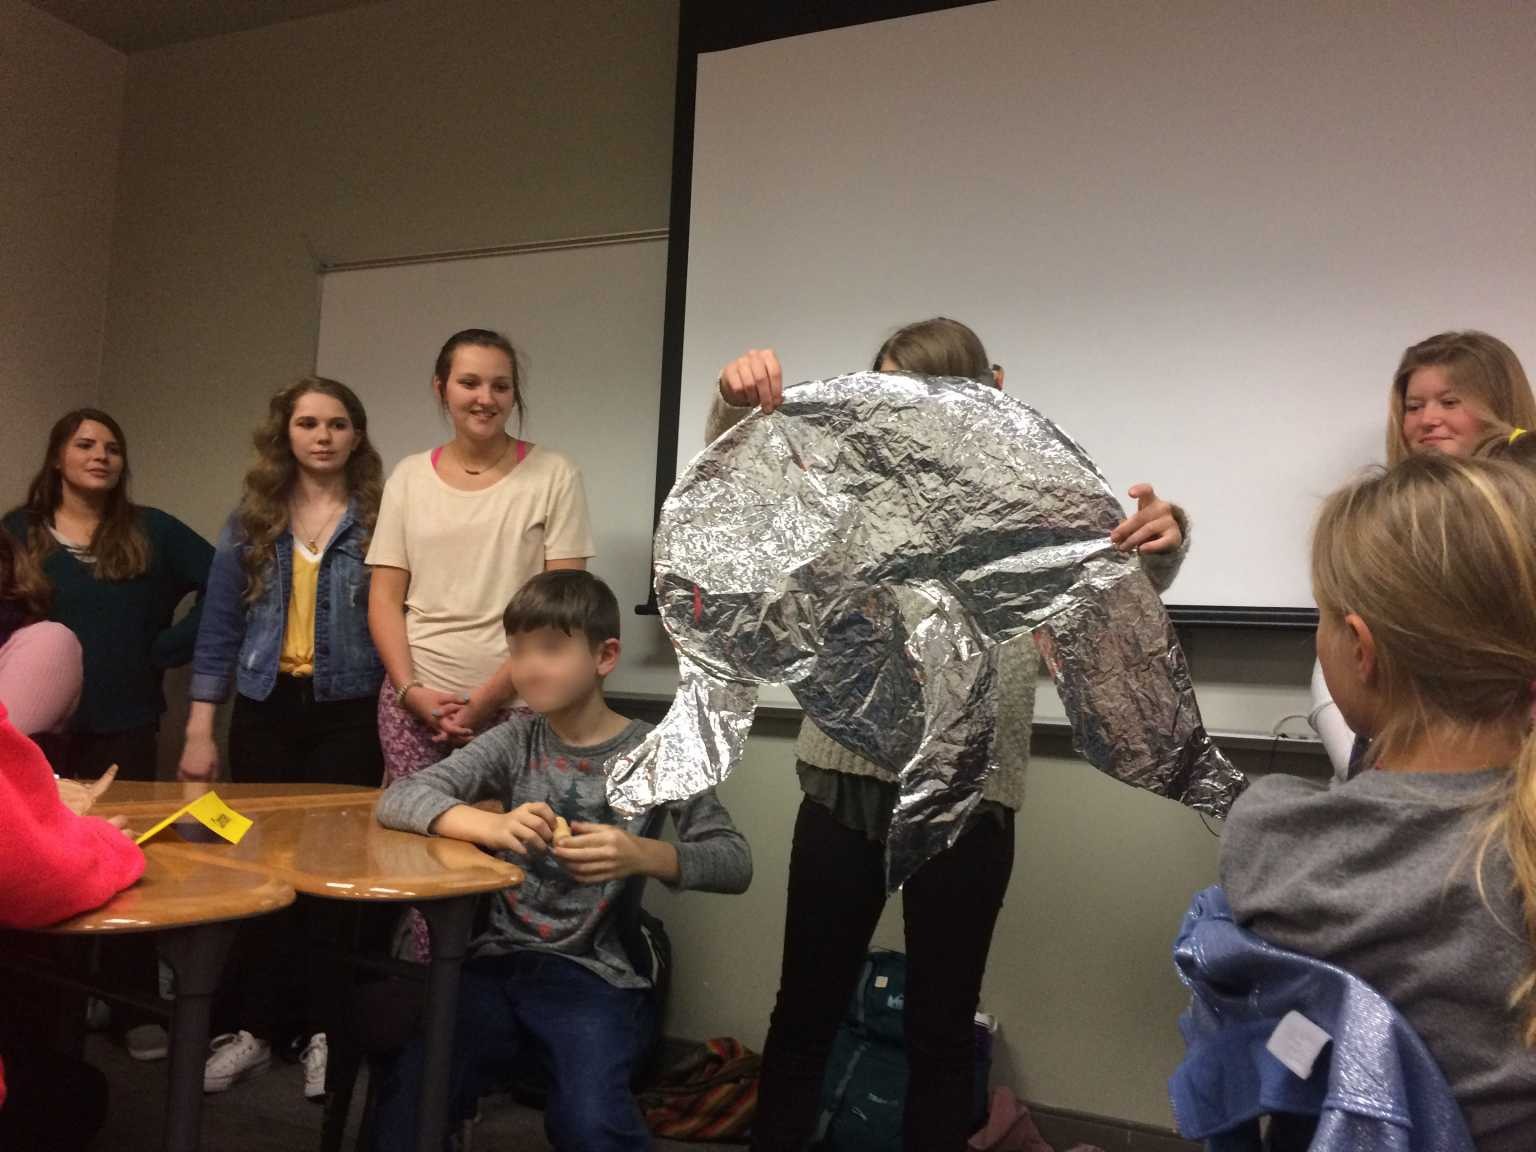 Art Ed. student make animals out of aluminum foil.